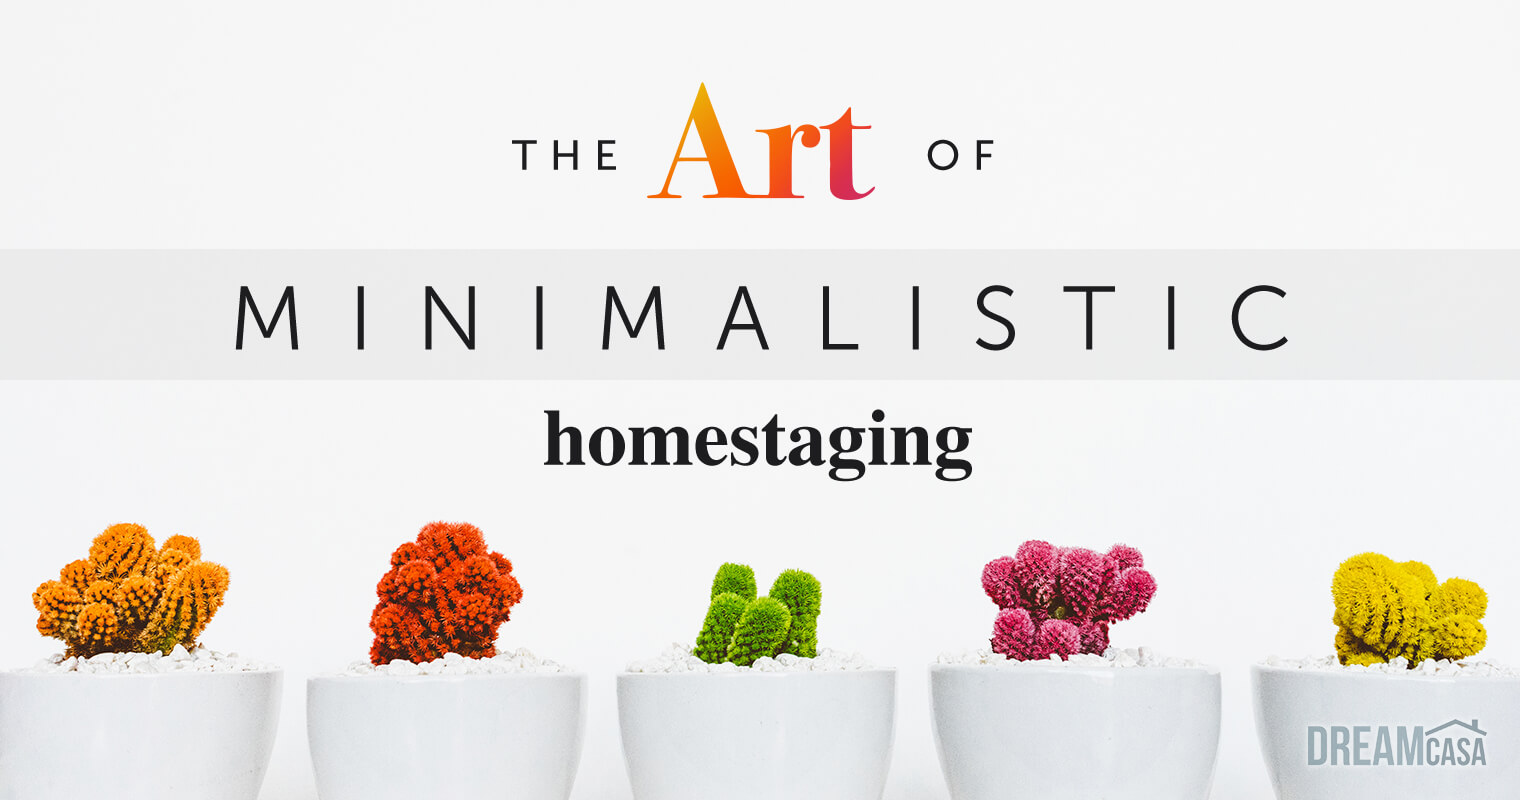 The Art of Minimalism and How to Bring It Home